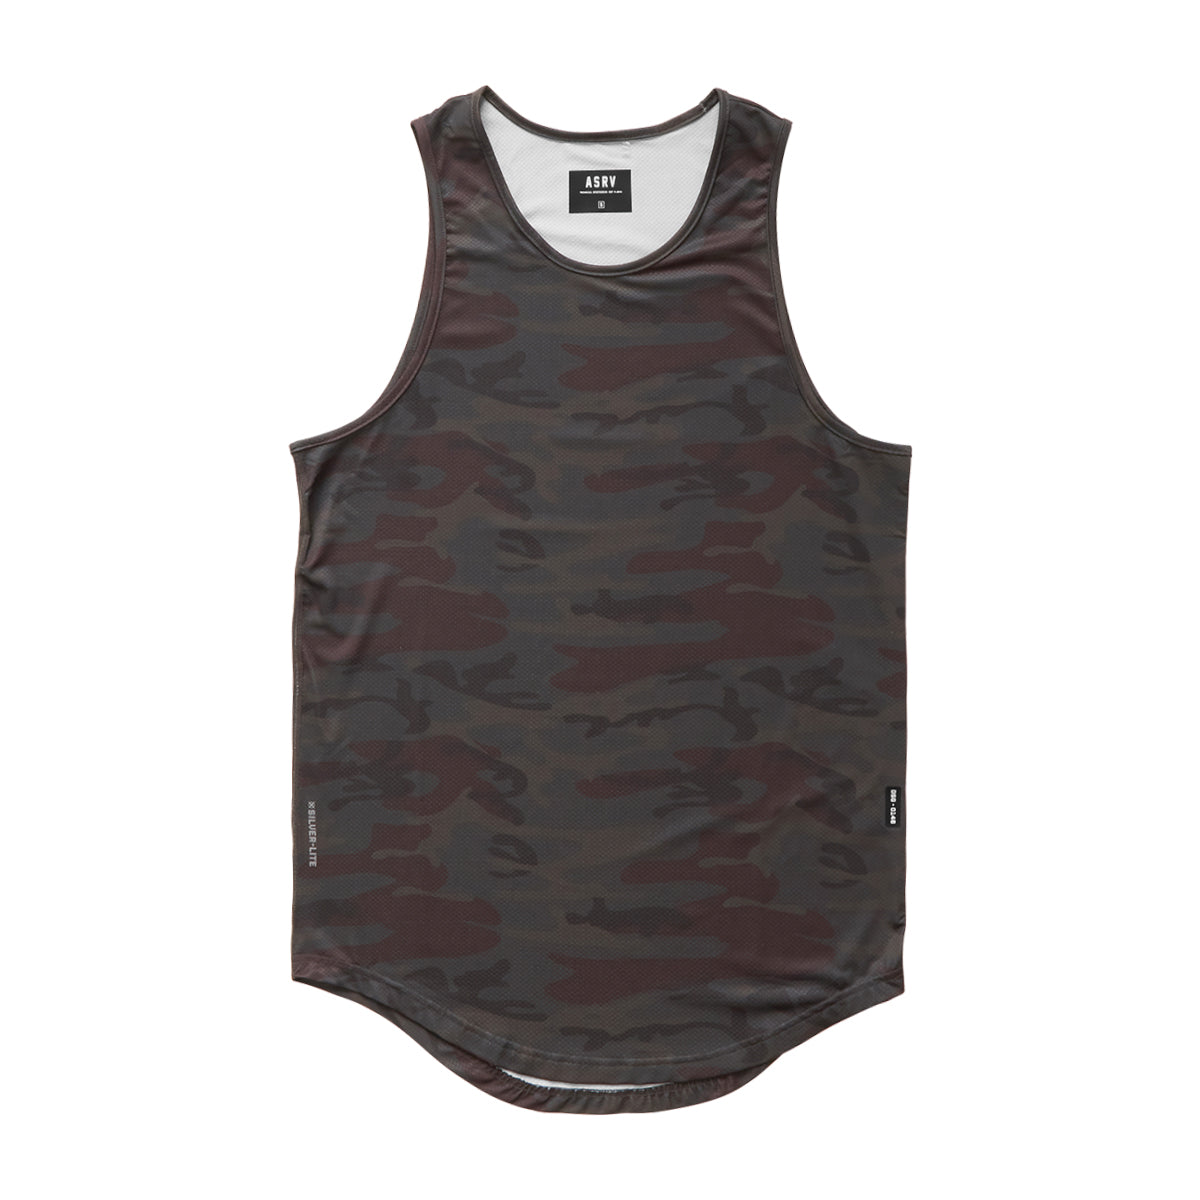 0146. Silver-Lite® Tank Top - Earth Camo